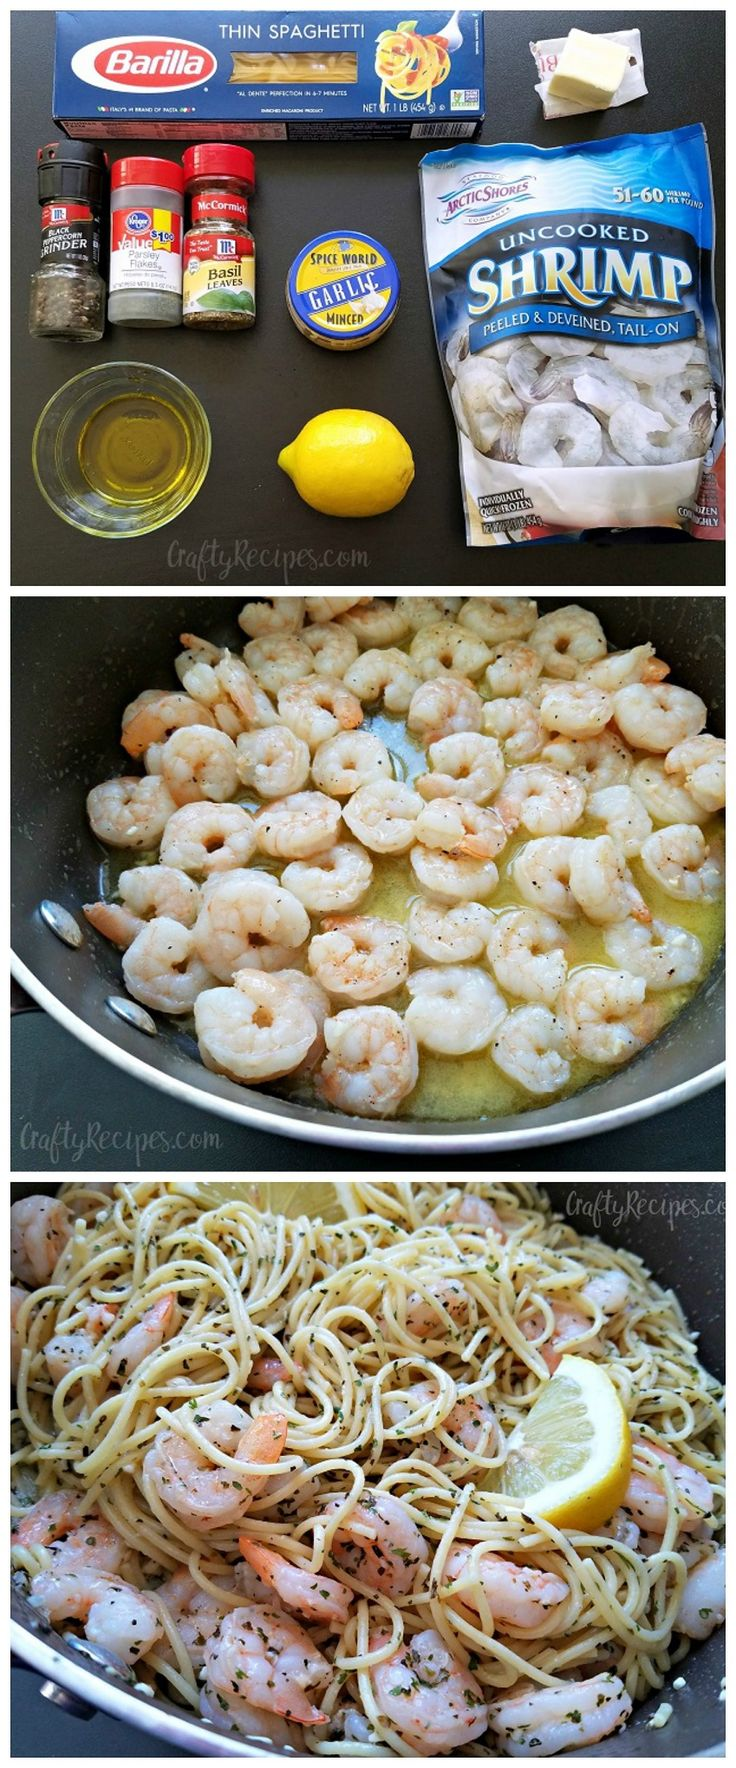 This garlic lemon shrimp pasta recipe was so yummy! My husband had seconds and took leftovers to work. Win.